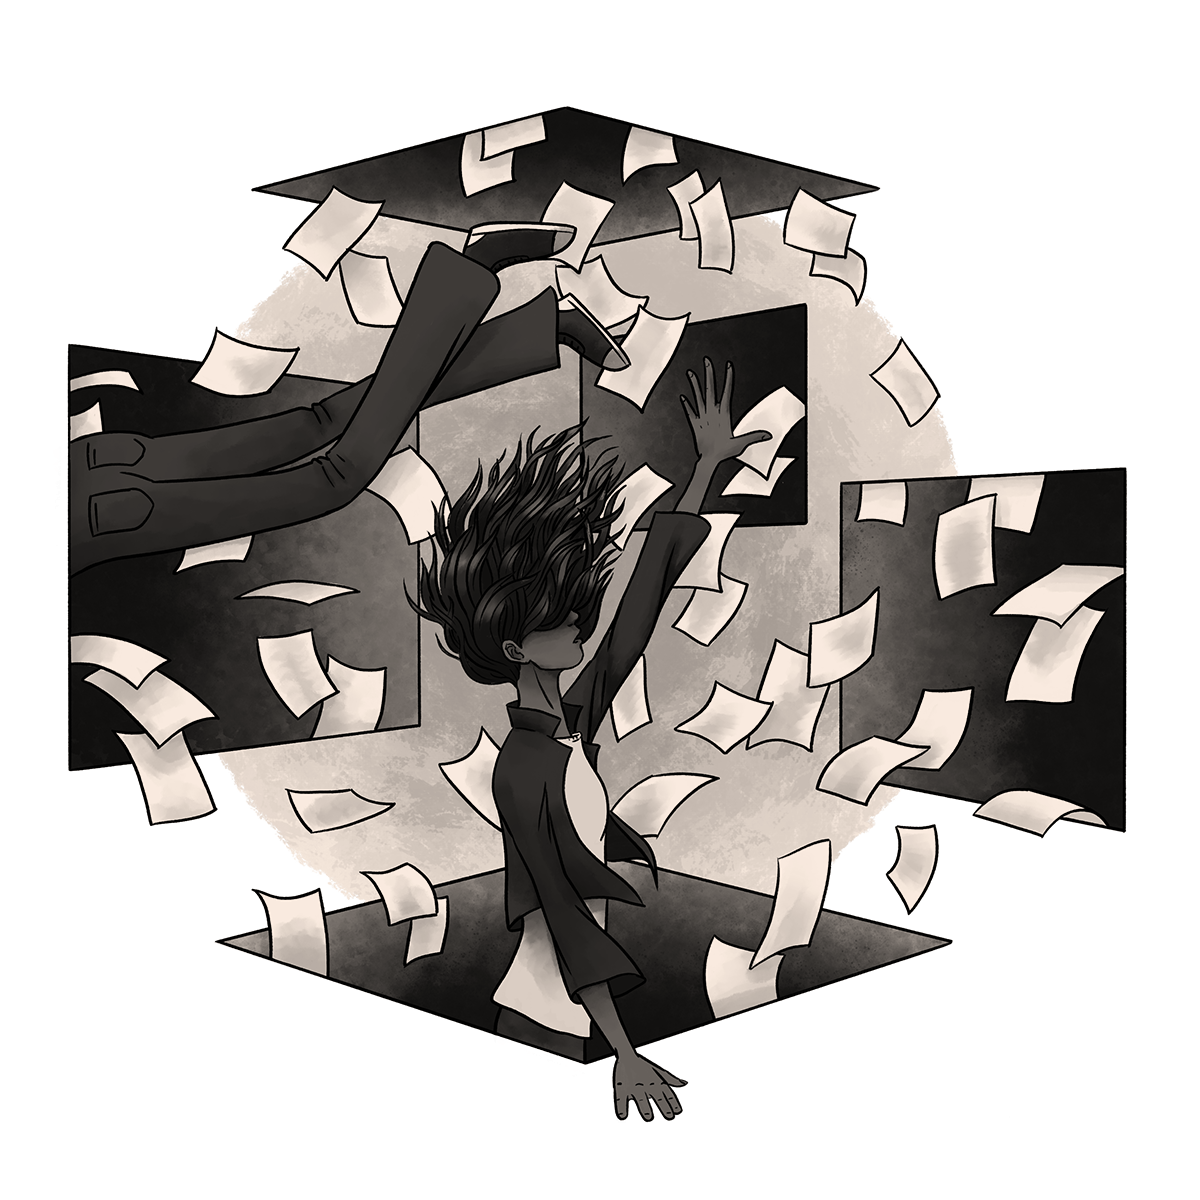 A woman is lost in a room of portals with papers flying around.